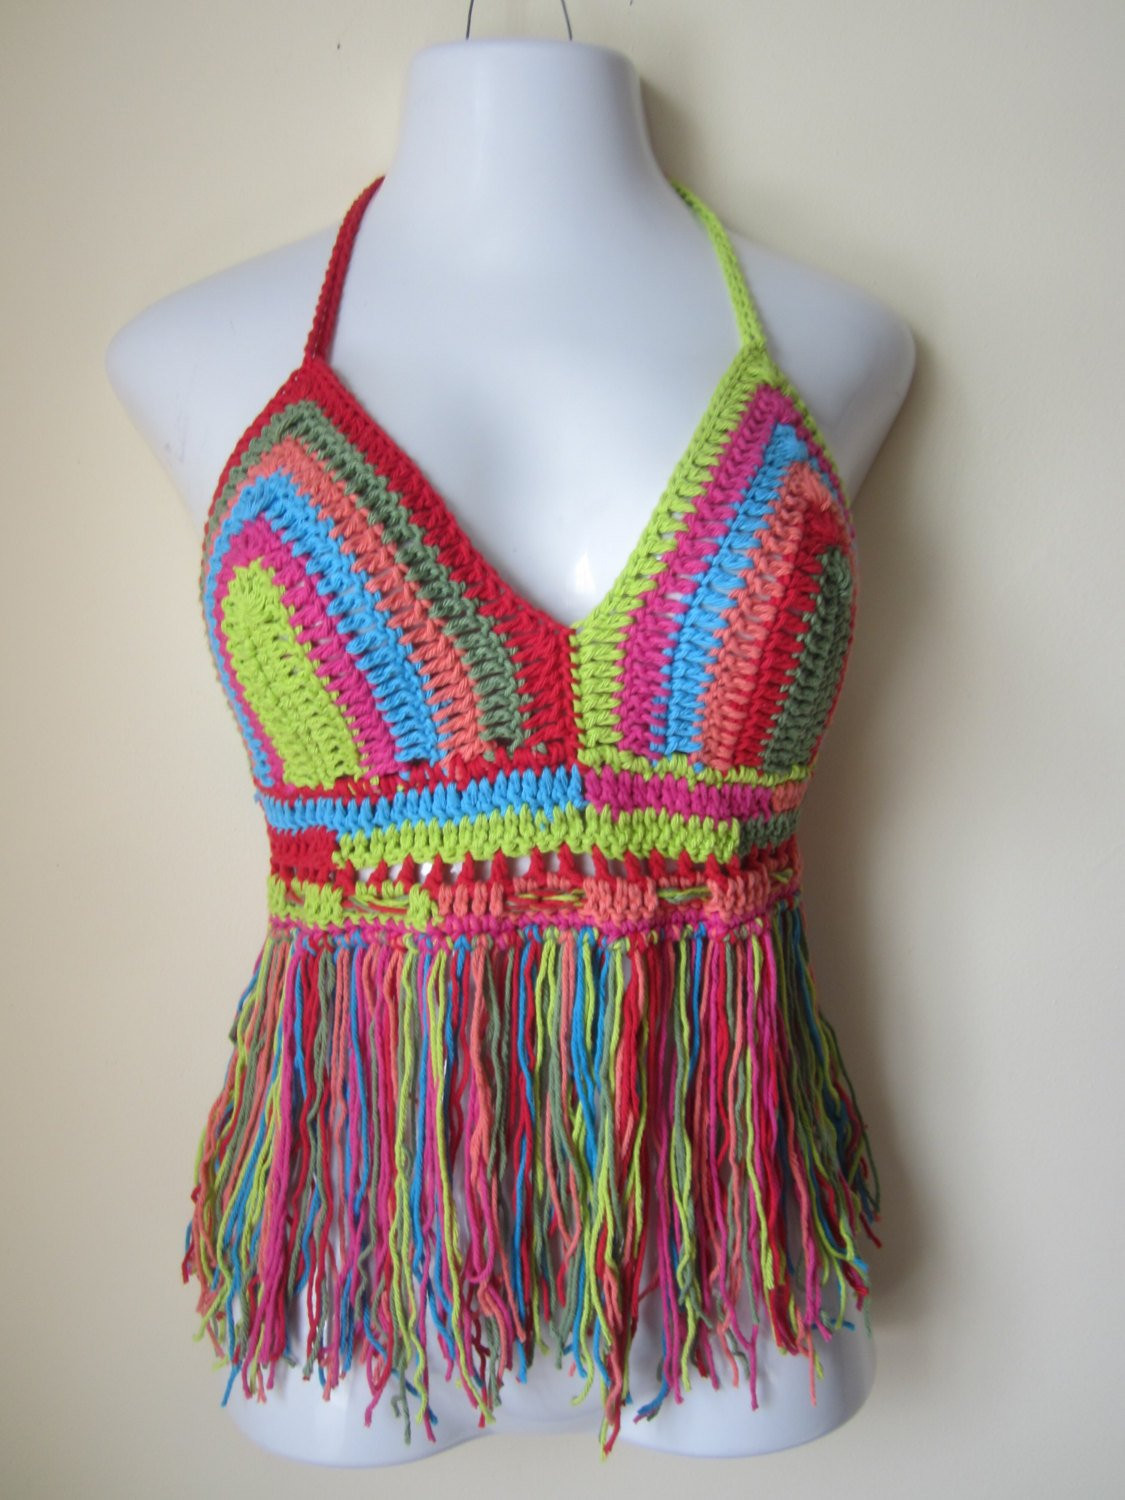 New Crochet Halter top Burning Man Festival Halter top Festival Crochet Halters Of Incredible 40 Models Crochet Halters